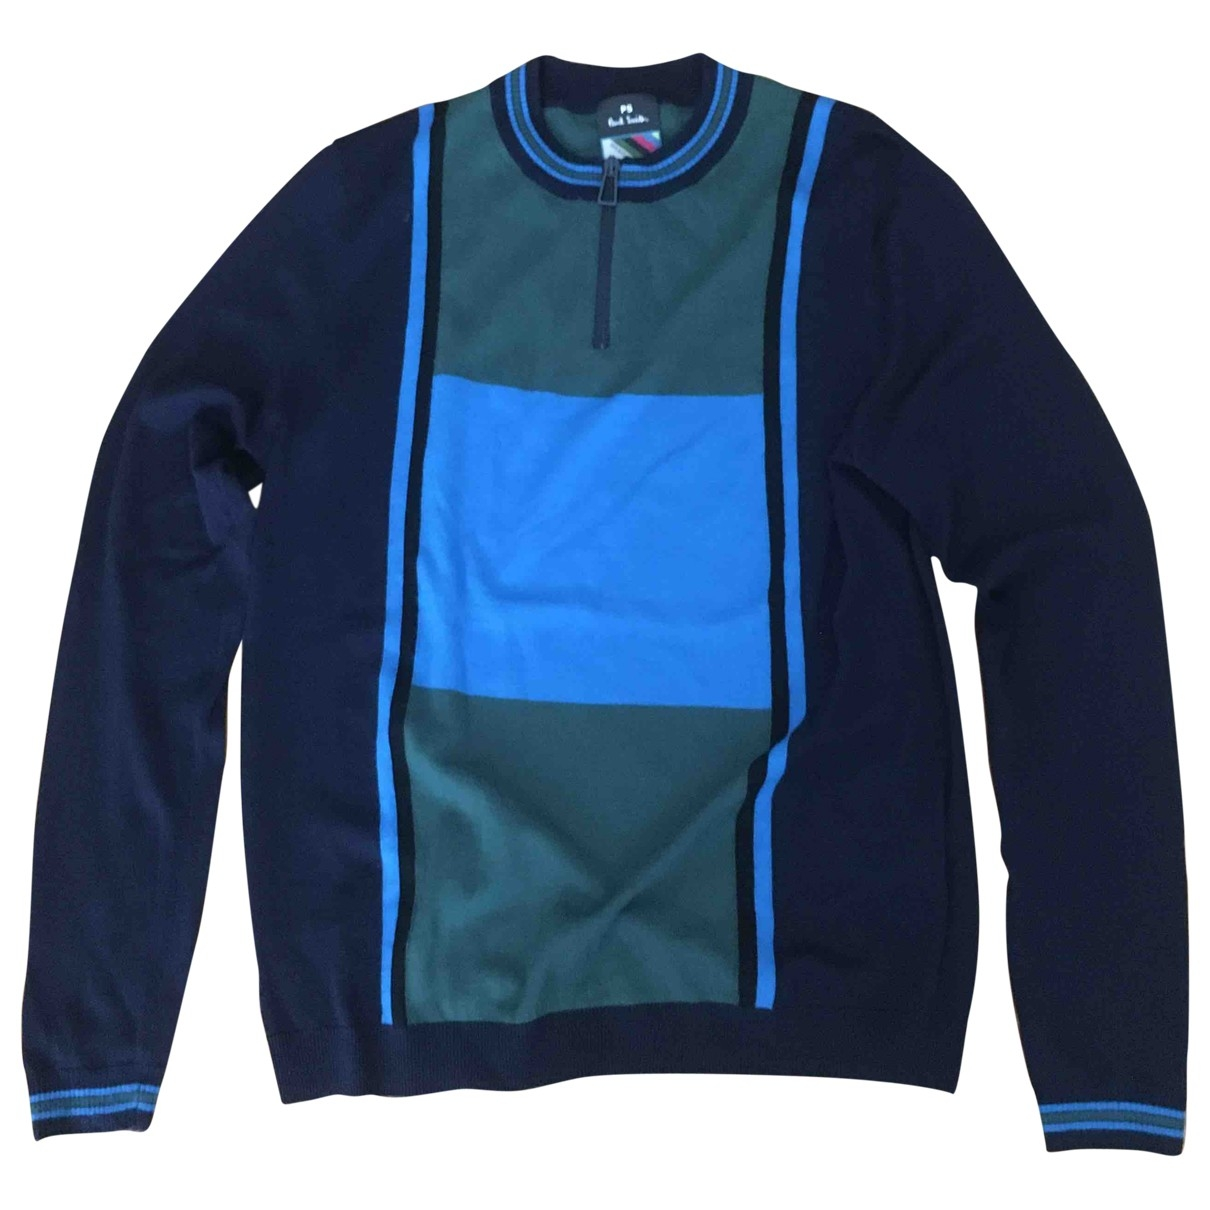 Paul Smith \N Blue Wool Knitwear & Sweatshirts for Men S International